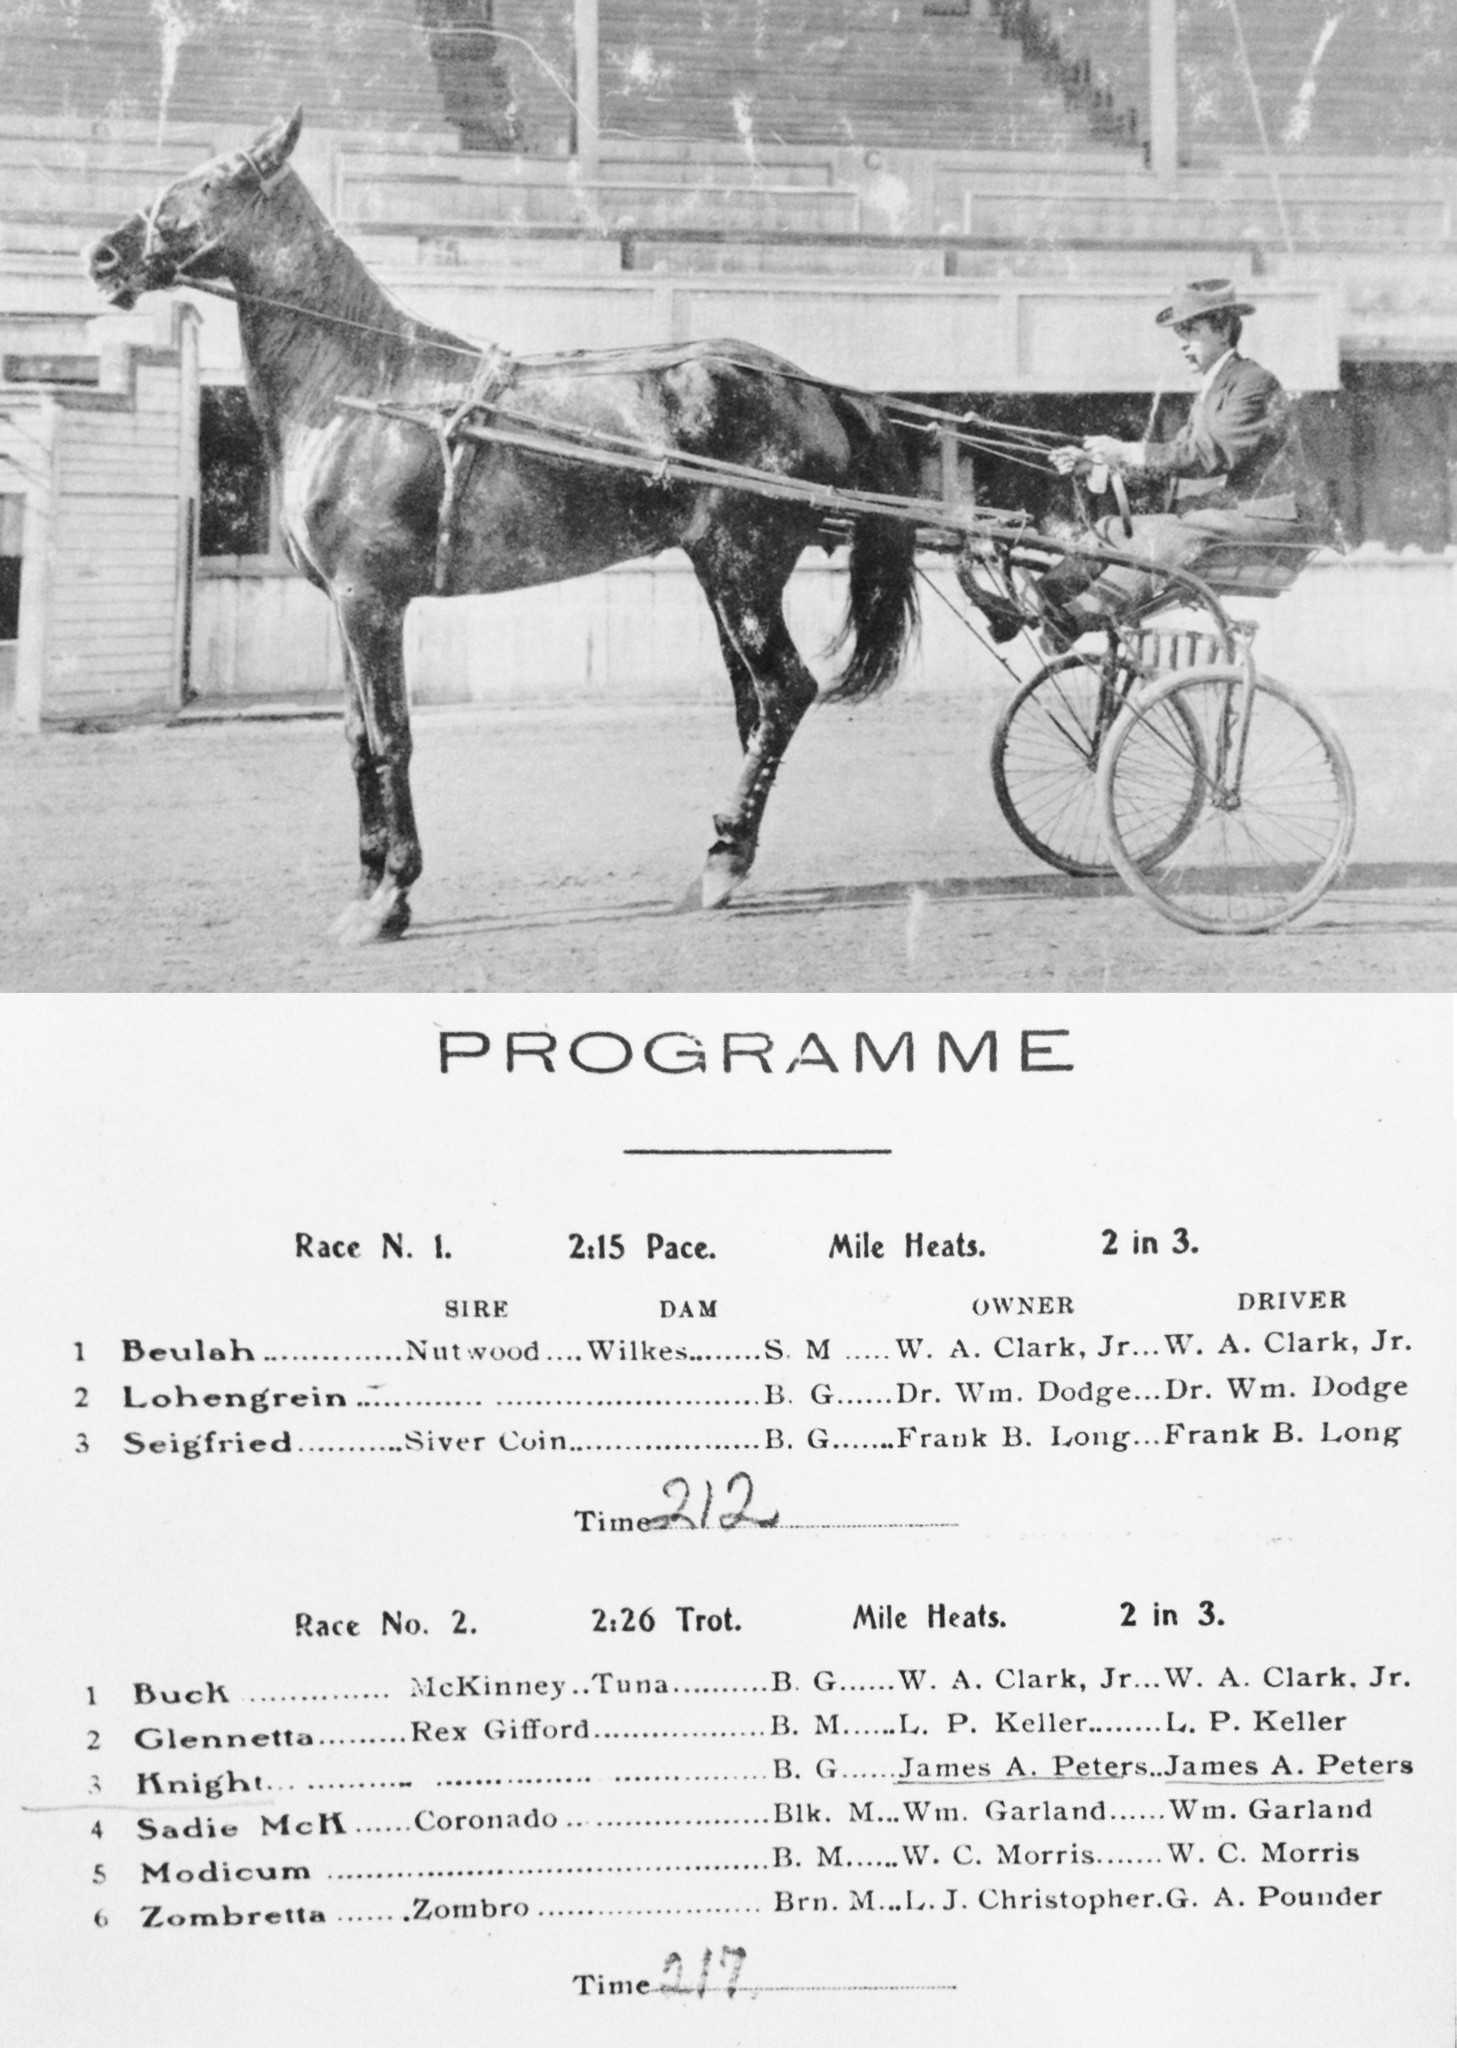 James Peters and Knight at Hollywood Exposition Park and program from a 1908 race where their time was 2 minutes 17 seconds. (Photo from family archives)